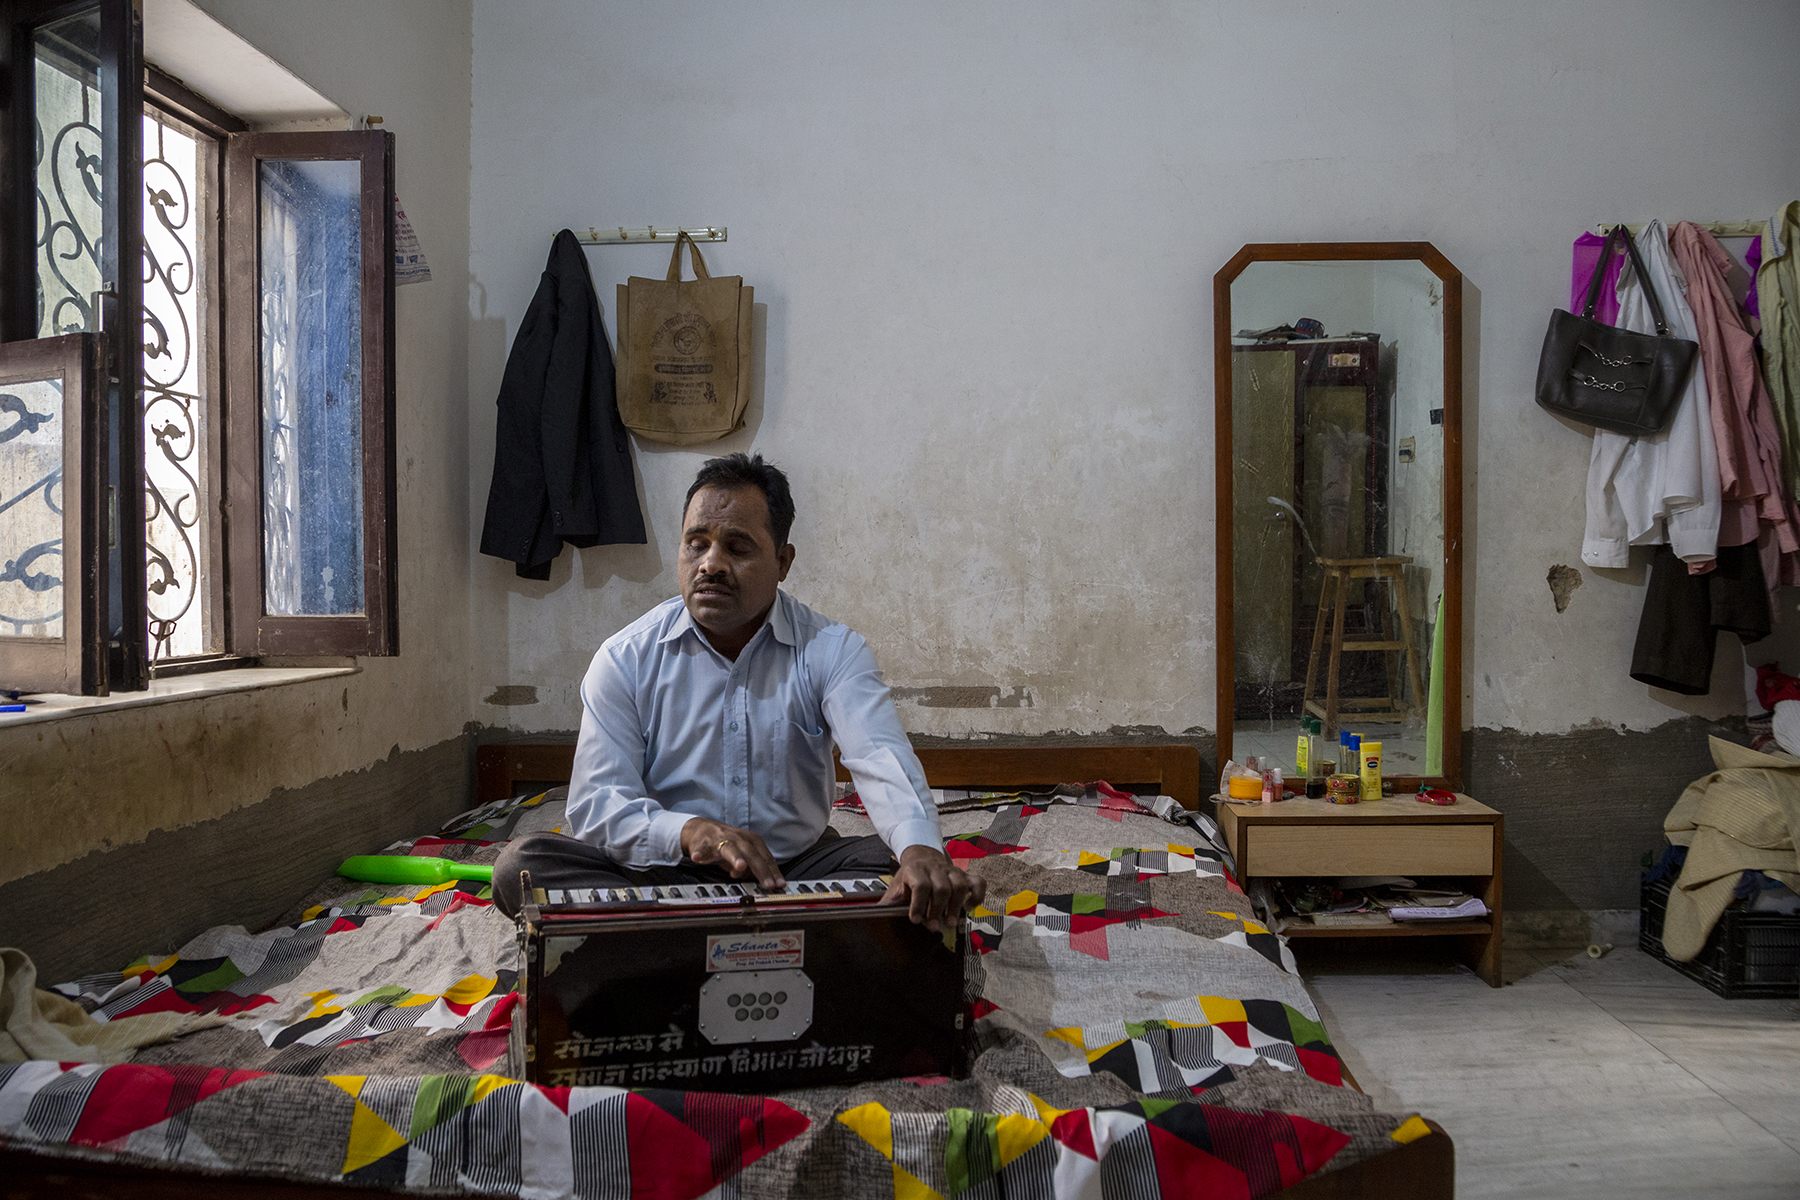 Prakash Chand sits cross-legged on a double bed, playing the harmonium. The bed is covered with a multi-coloured sheet. There is a window with open glass panes to the left, a leather bag and a coat hanging from hooks on the wall behind him, and a full-length mirror and dresser to the right.